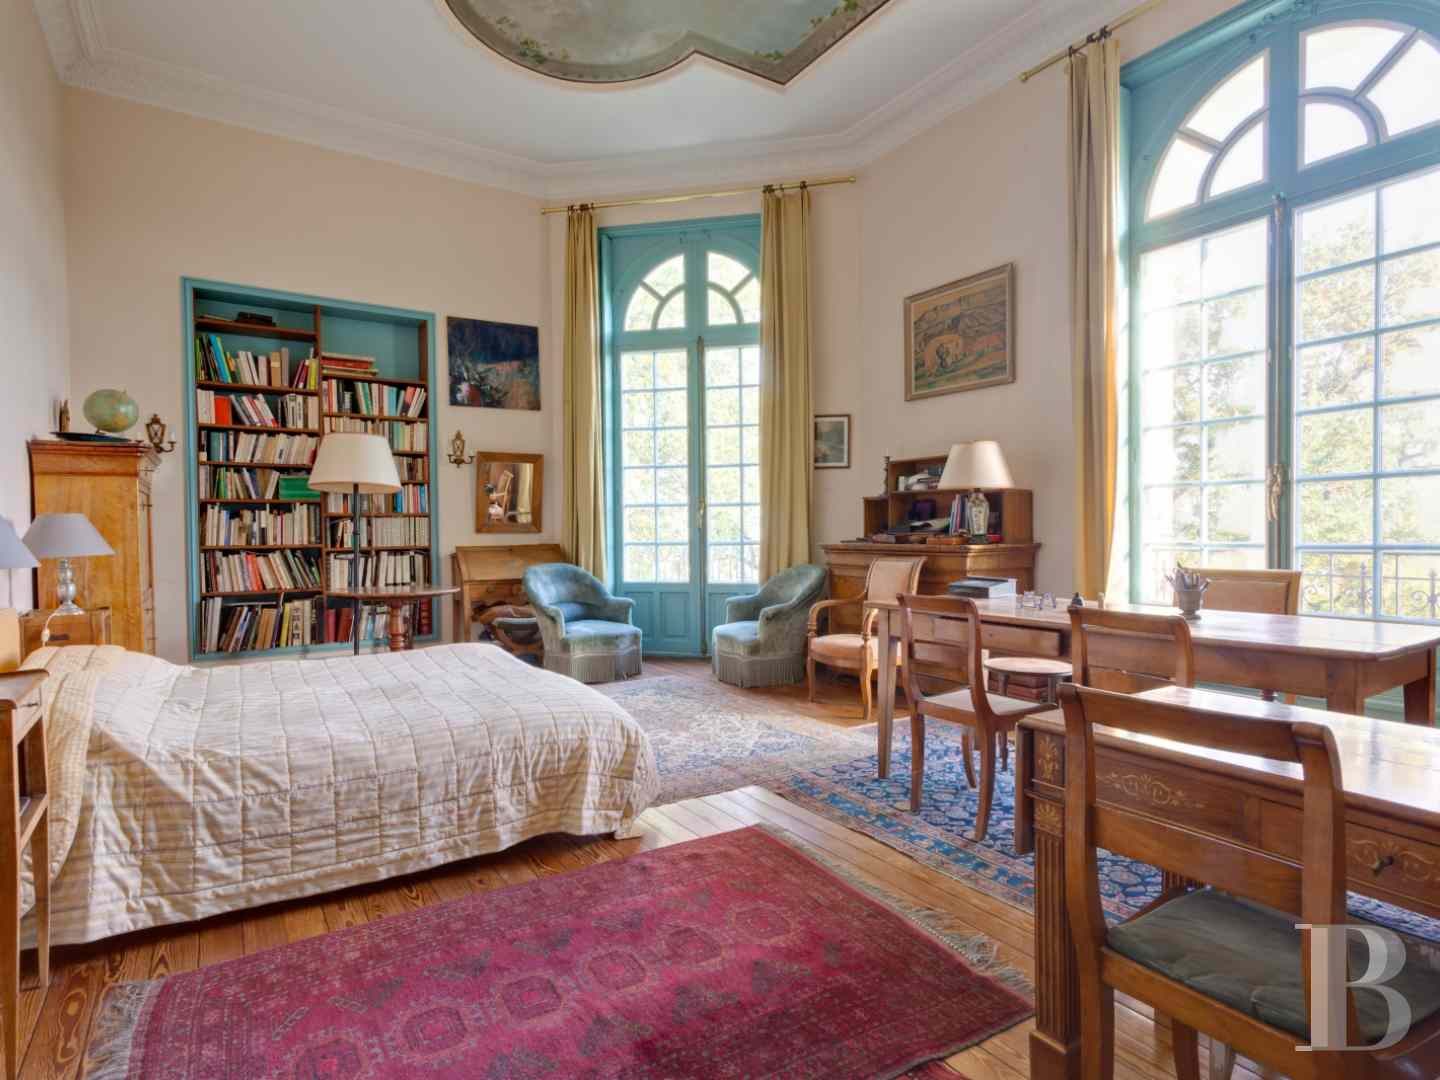 mansion houses for sale paris mansion houses - 12 zoom